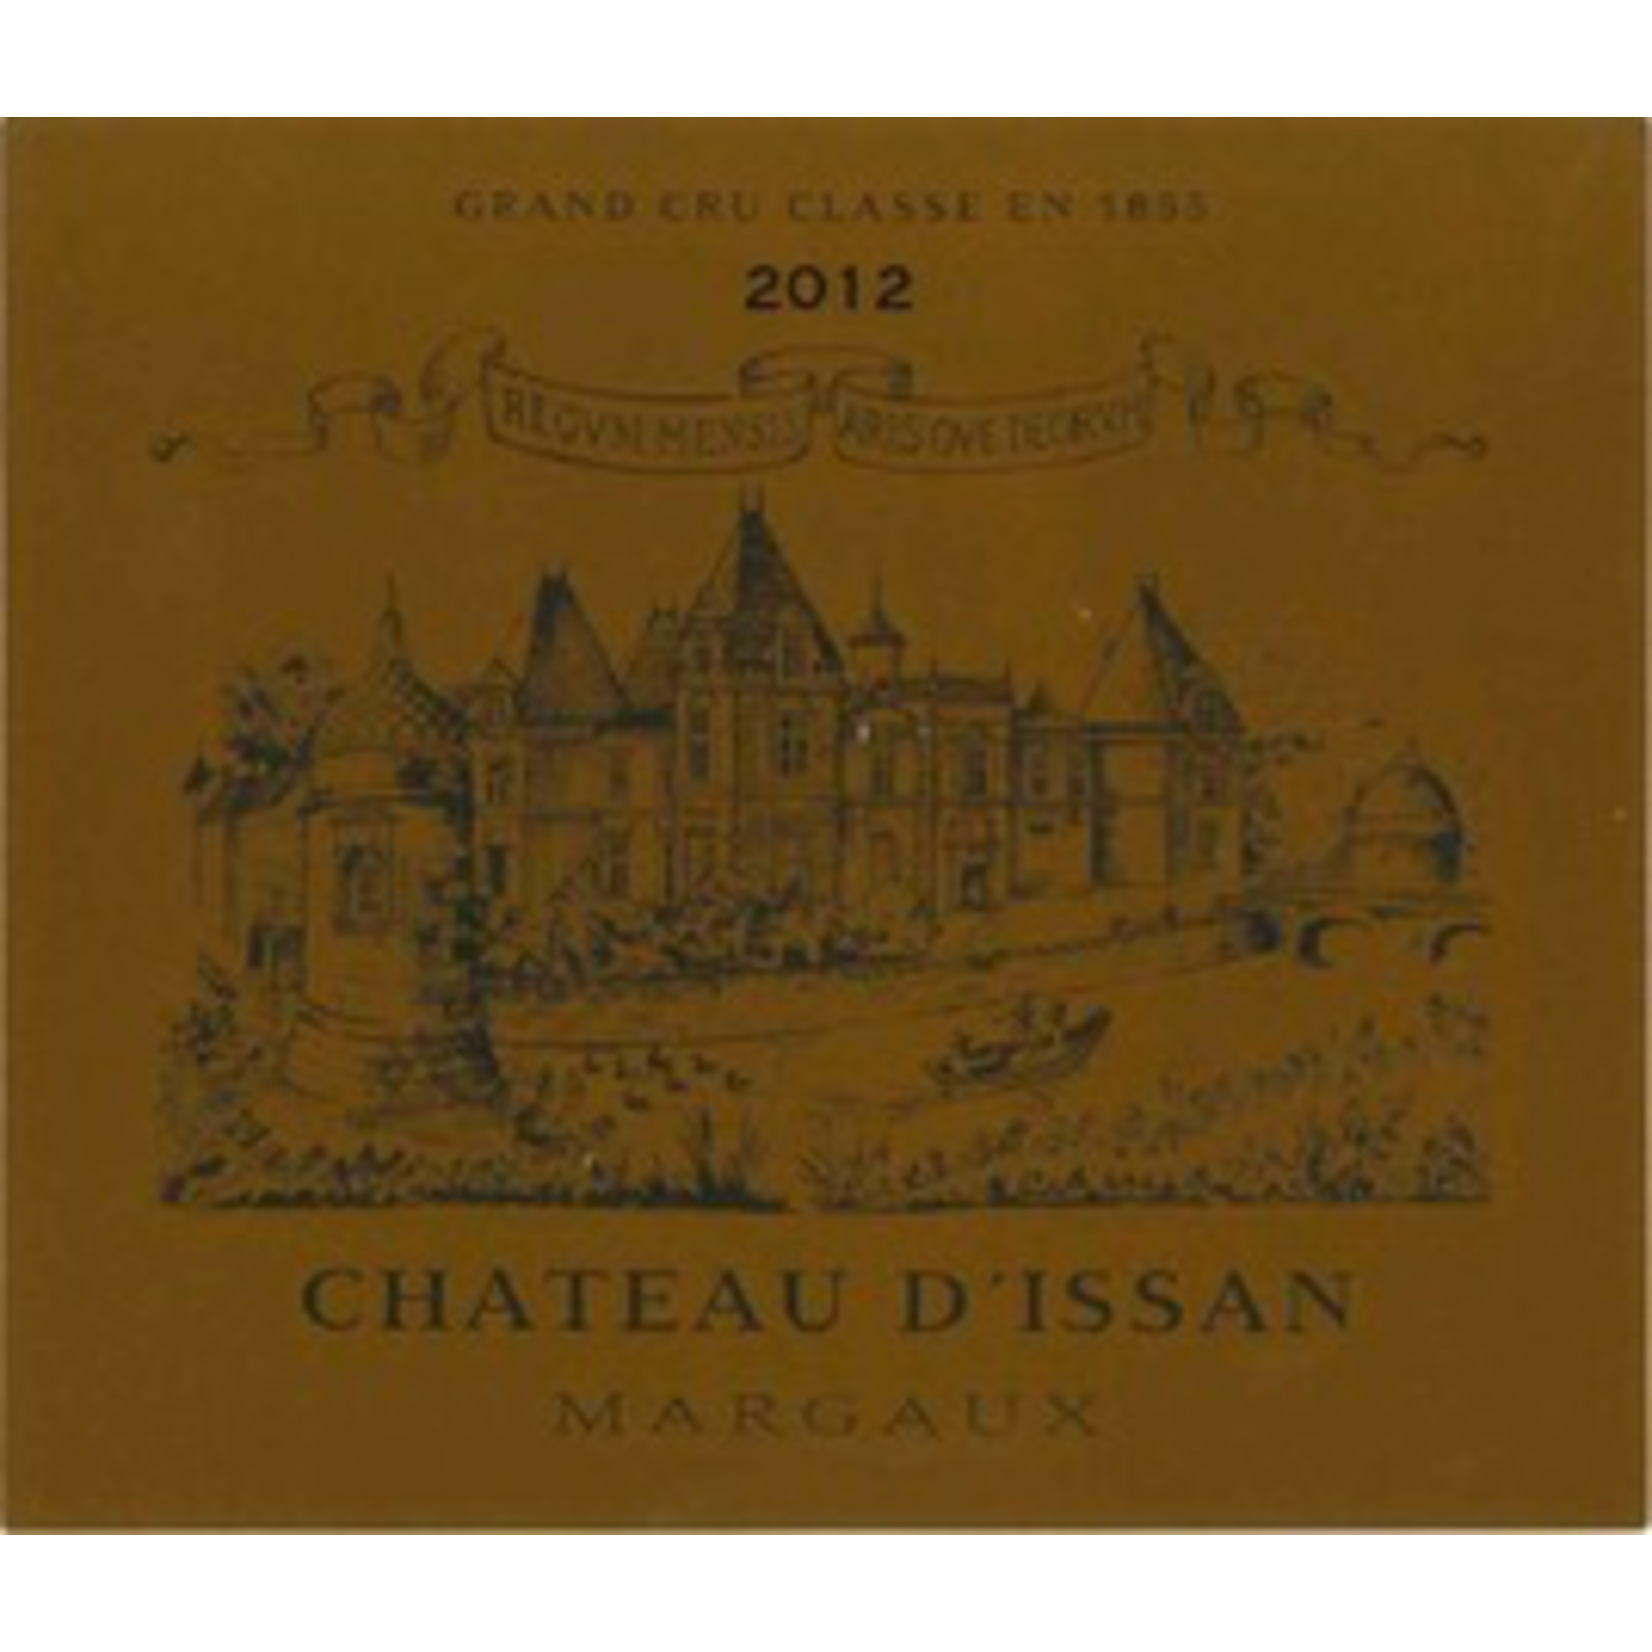 Wine Chateau d'Issan 2012